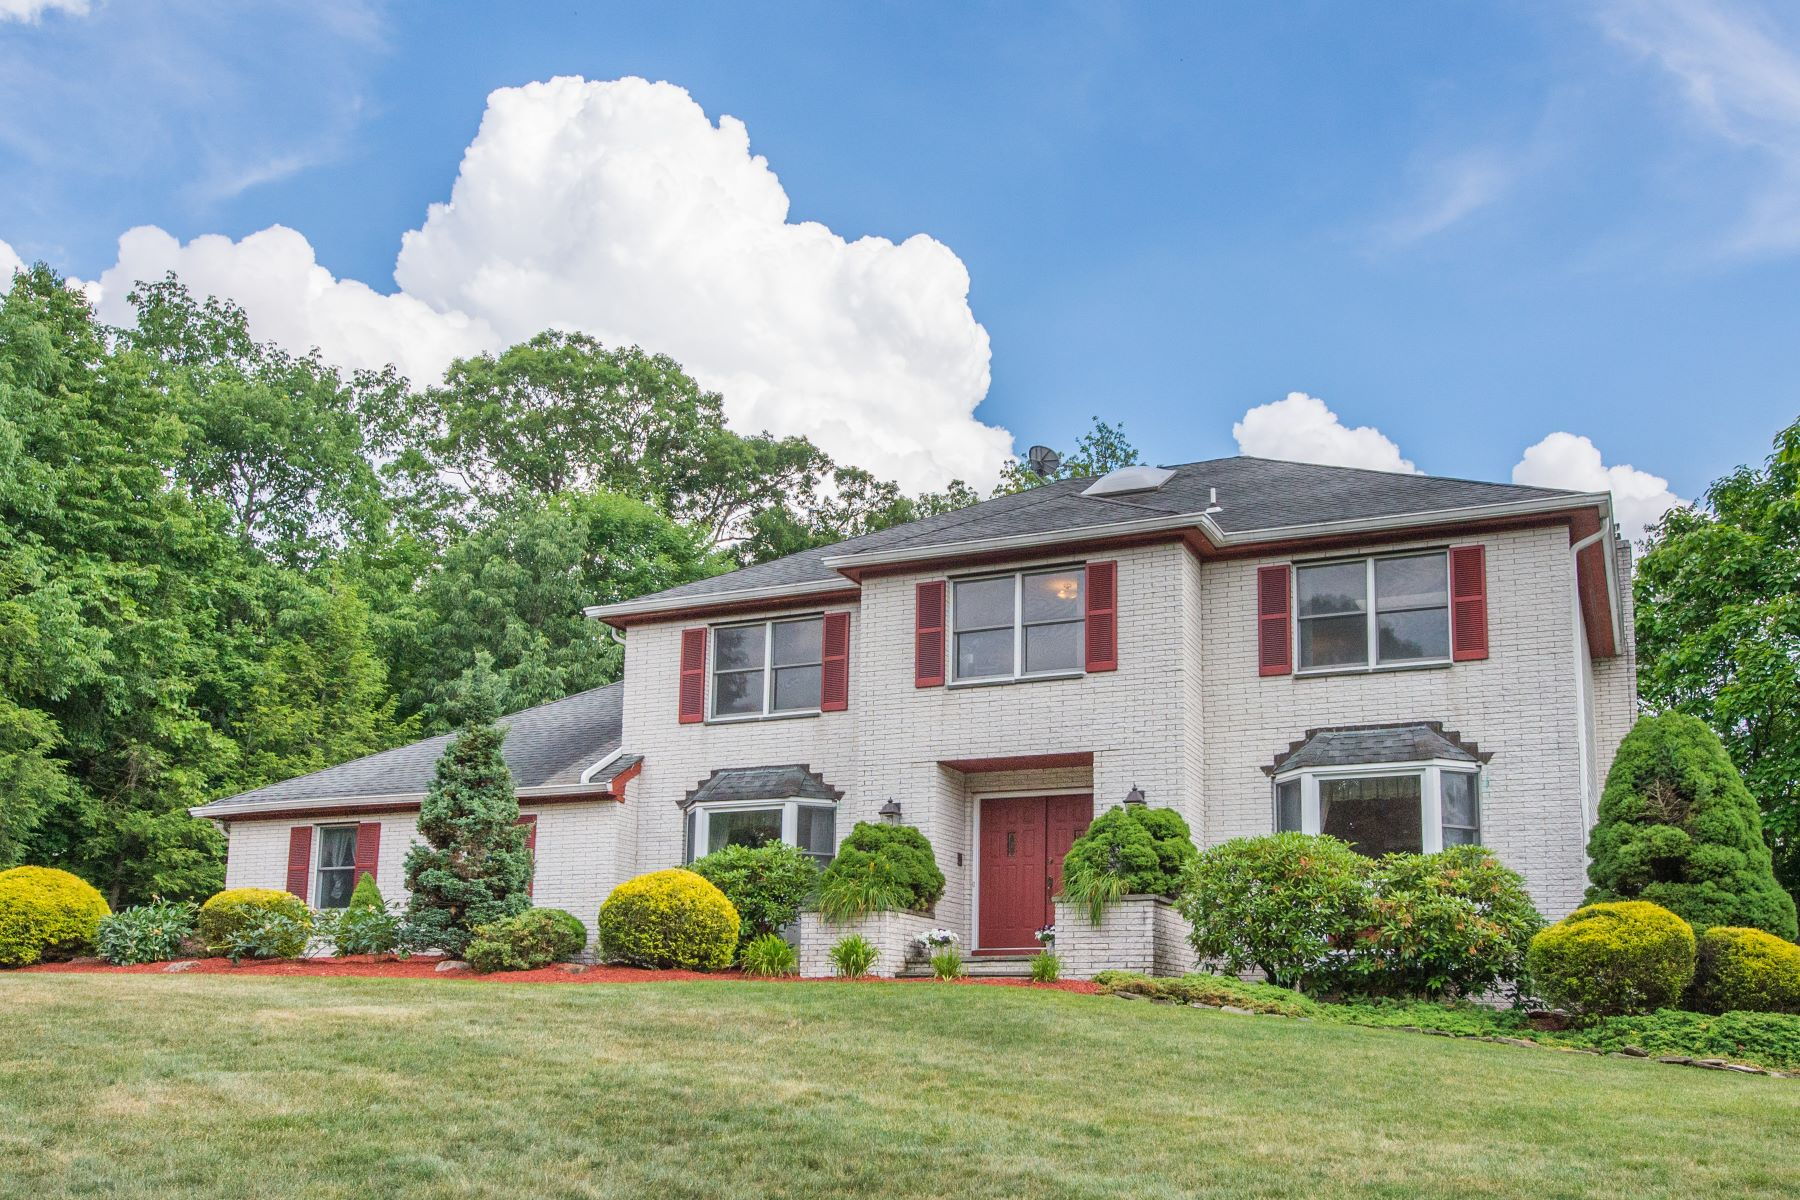 Single Family Homes for Active at Stately Center Hall Colonial in Montville 5 Tomalyn Hill Road Montville, New Jersey 07045 United States